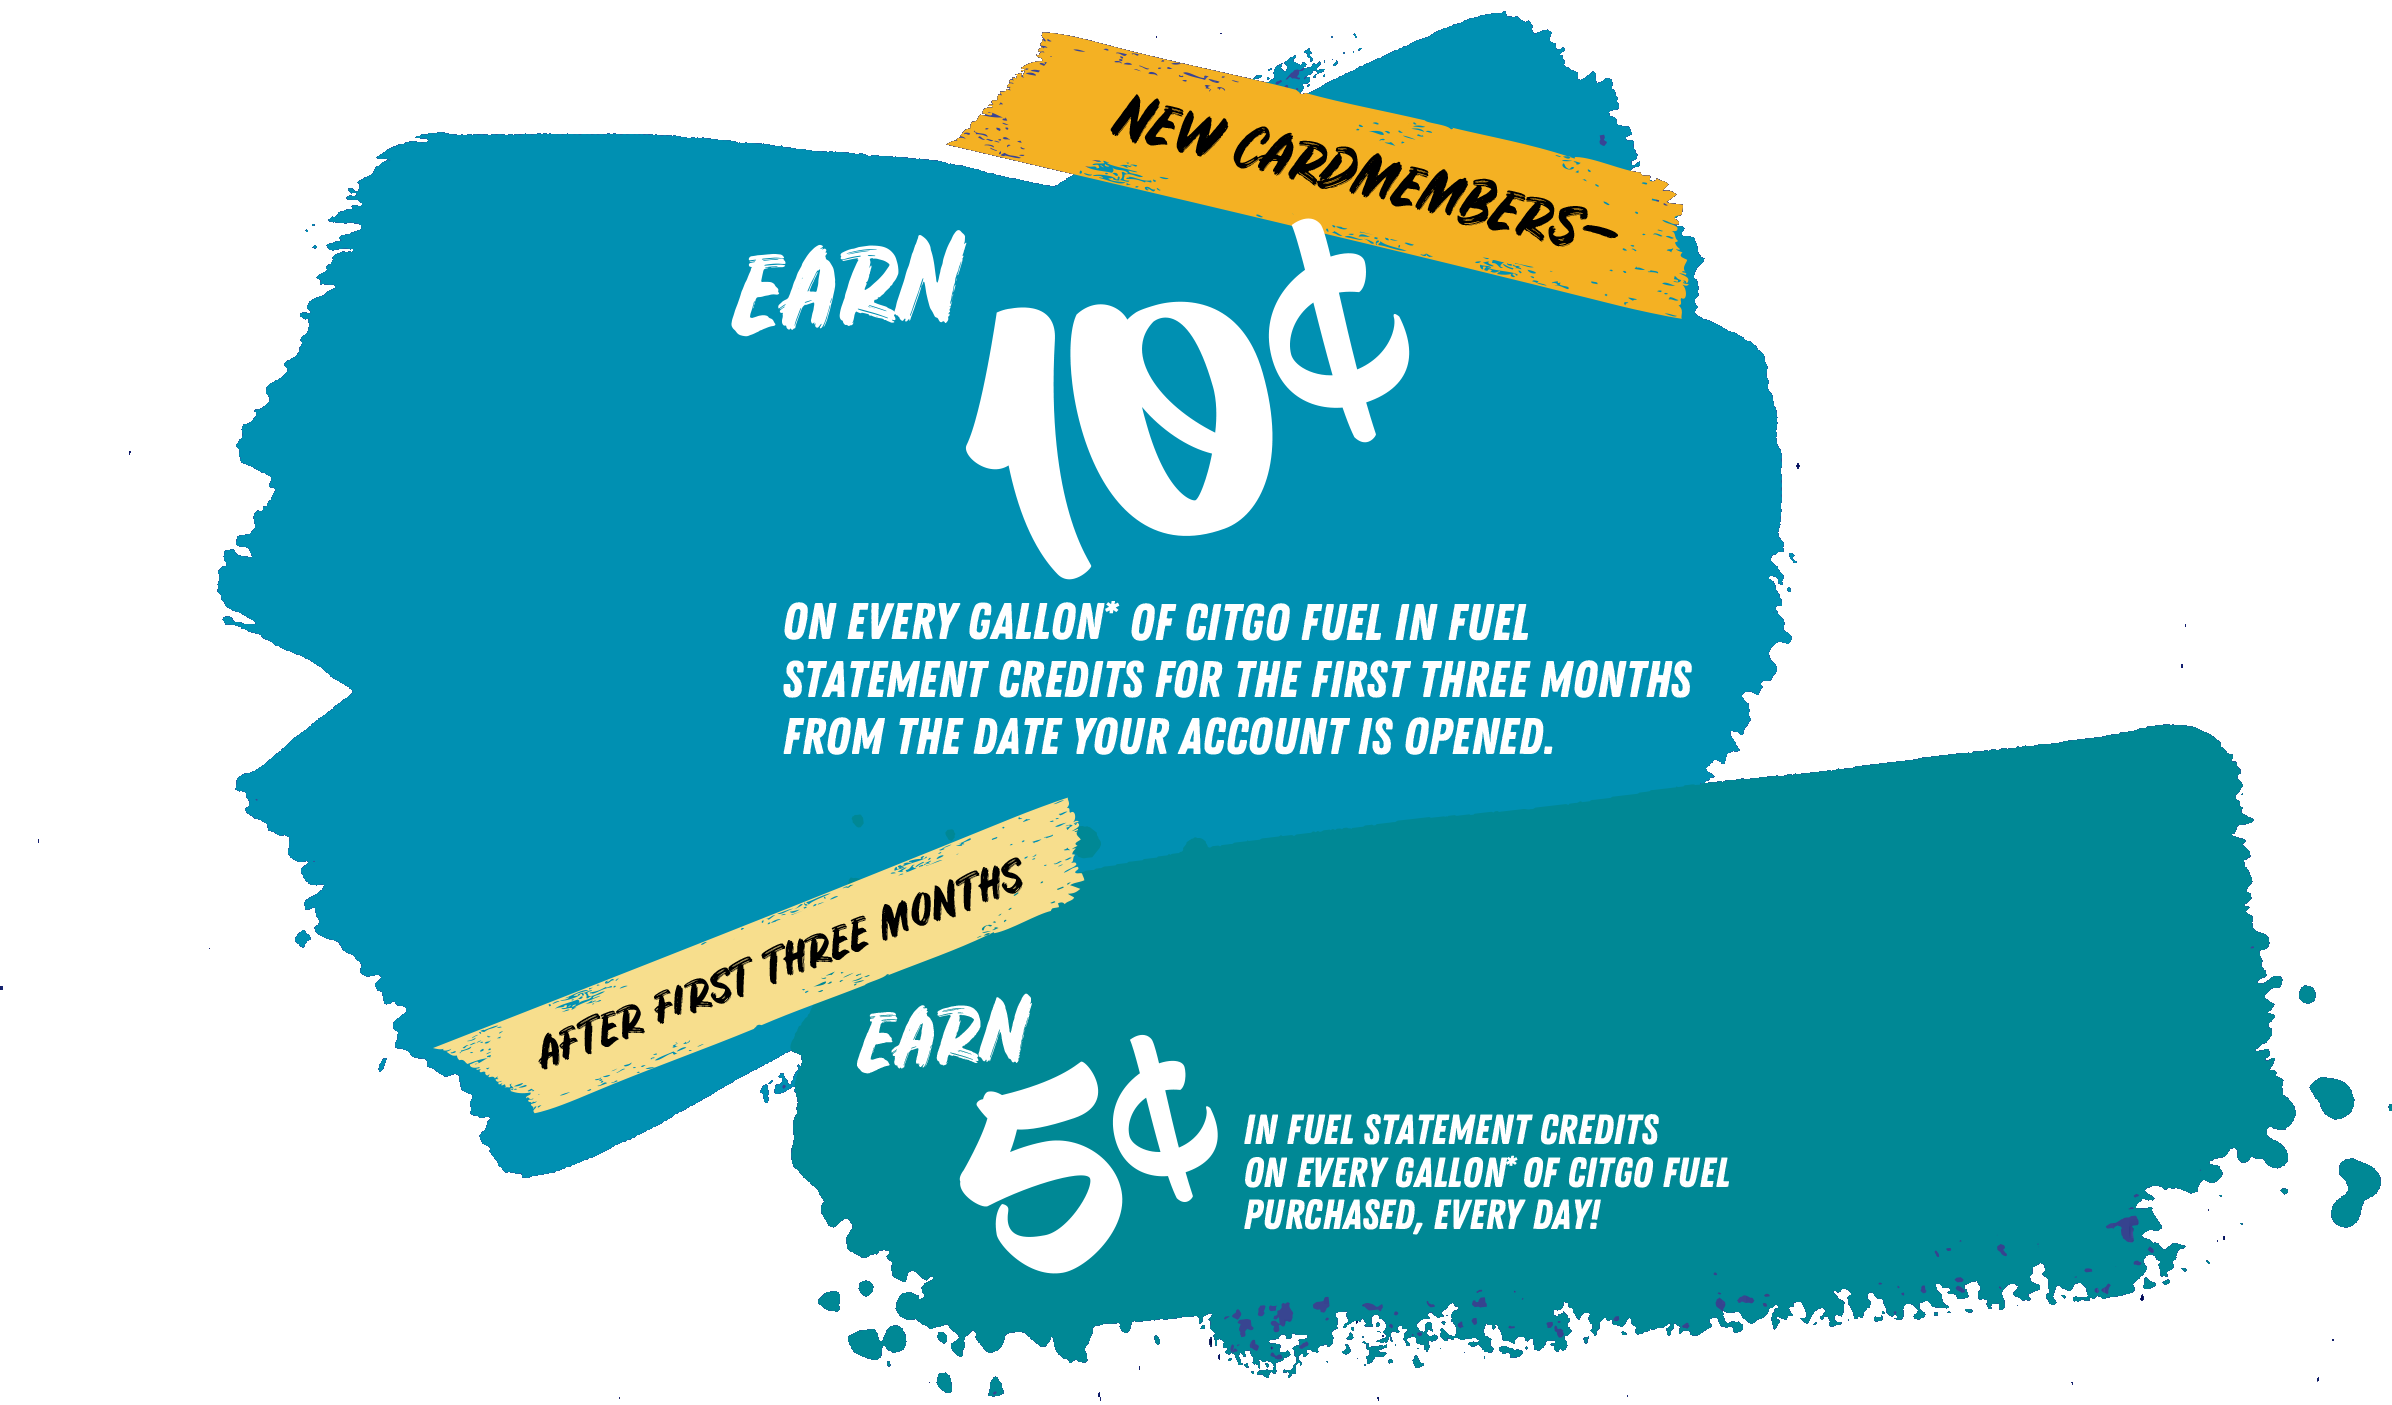 NEW CARDMEMBERS – EARN 10¢ ON EVERY GALLON* OF CITGO FUEL IN FUEL STATEMENT CREDITS FOR THE FIRST THREE MONTHS FROM THE DATE YOUR ACCOUNT IS OPENED. AFTER FIRST THREE MONTHS EARN 5¢ IN FUEL STATEMENT CREDITS ON EVERY GALLON* OF CITGO FUEL PURCHASED, EVERY DAY!